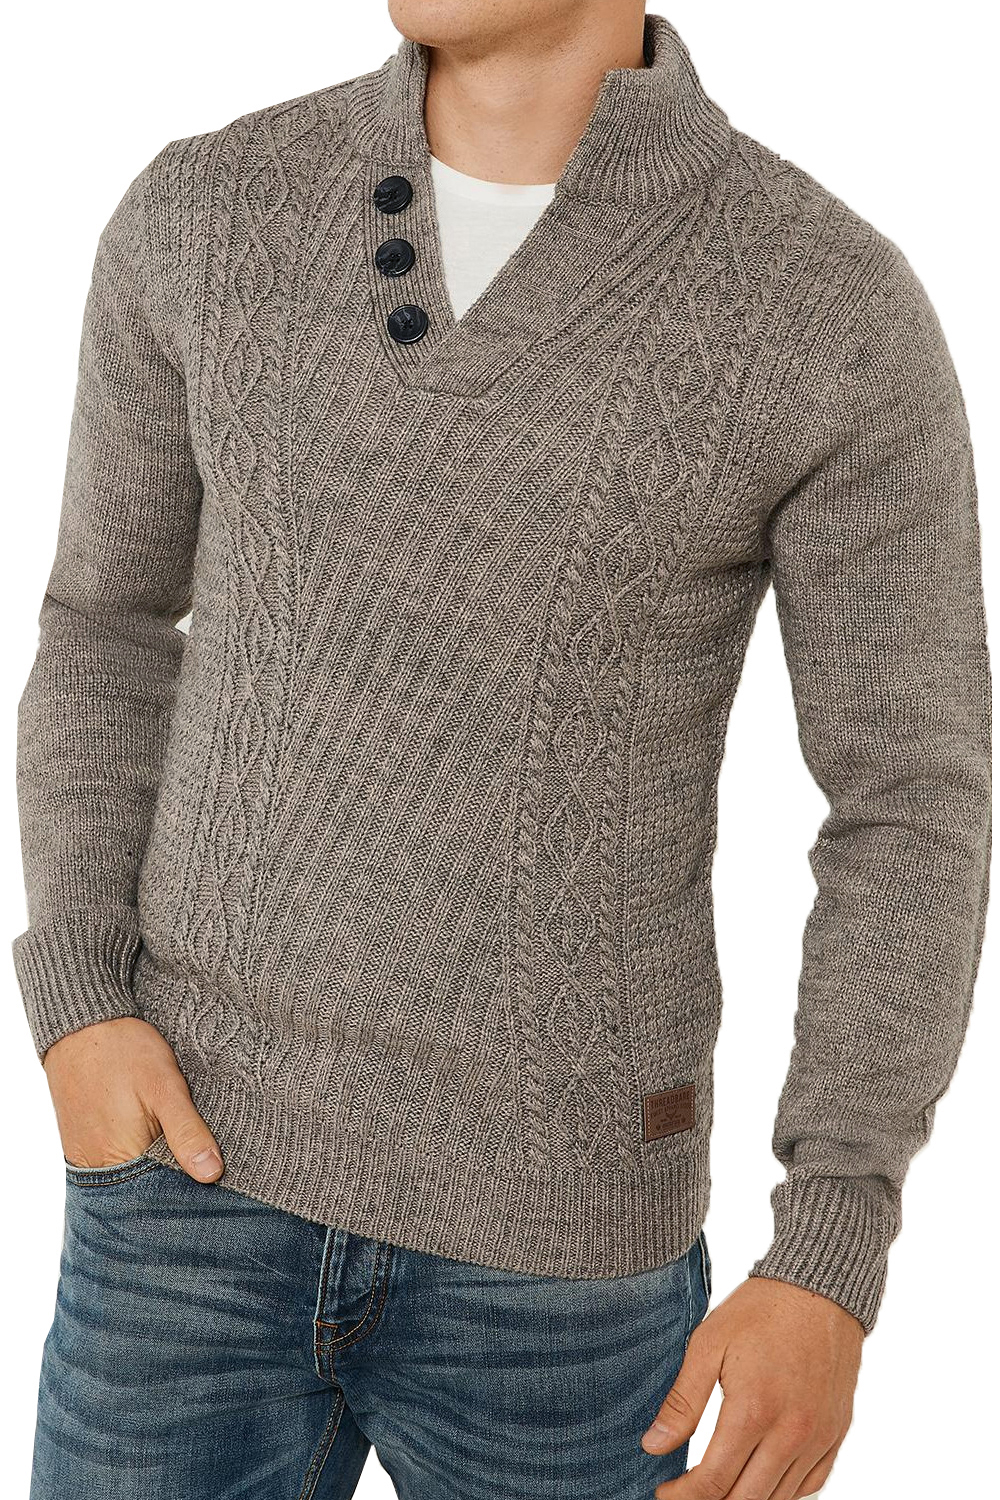 Threadbare-Wray-Mens-Top-Cable-Knited-Designer-Luxurious-Wool-Mix-Raglan-Jumpers thumbnail 24